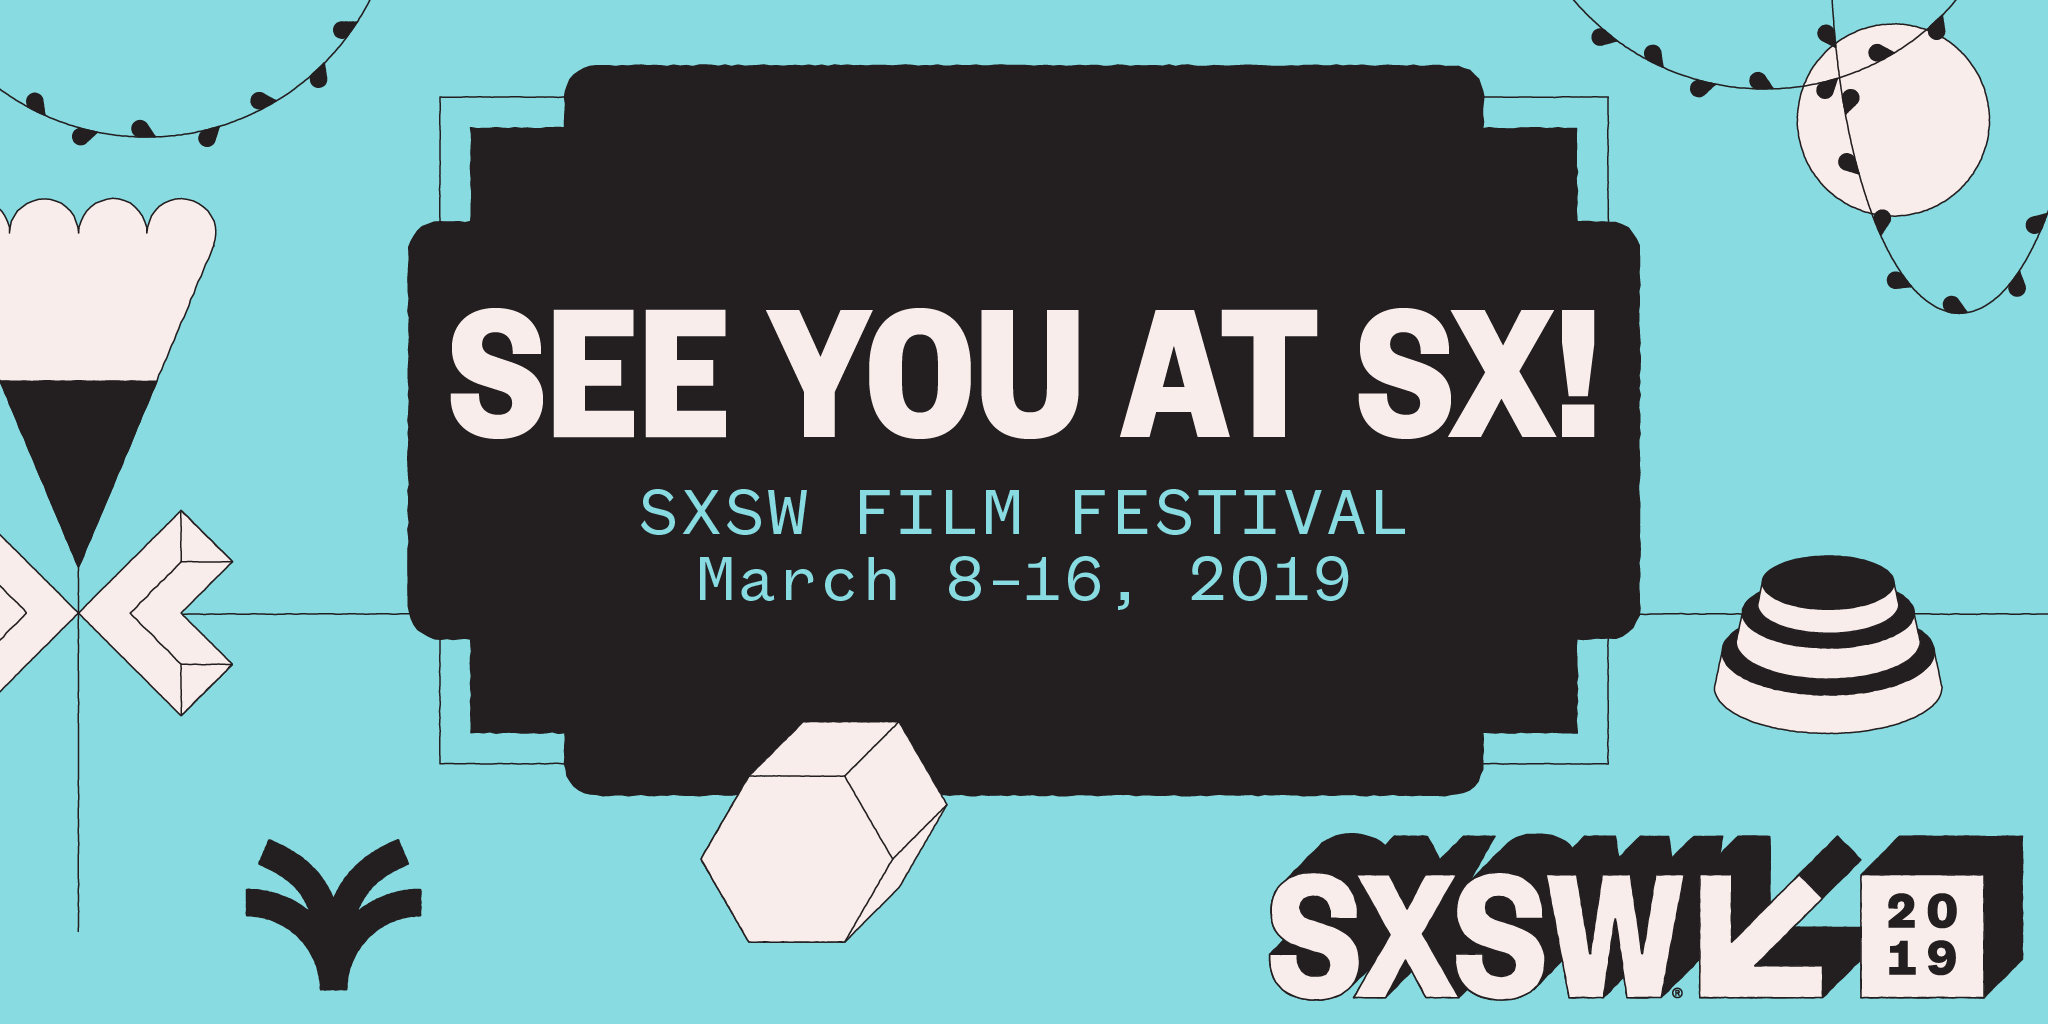 See you at South by Southwest Film Festival